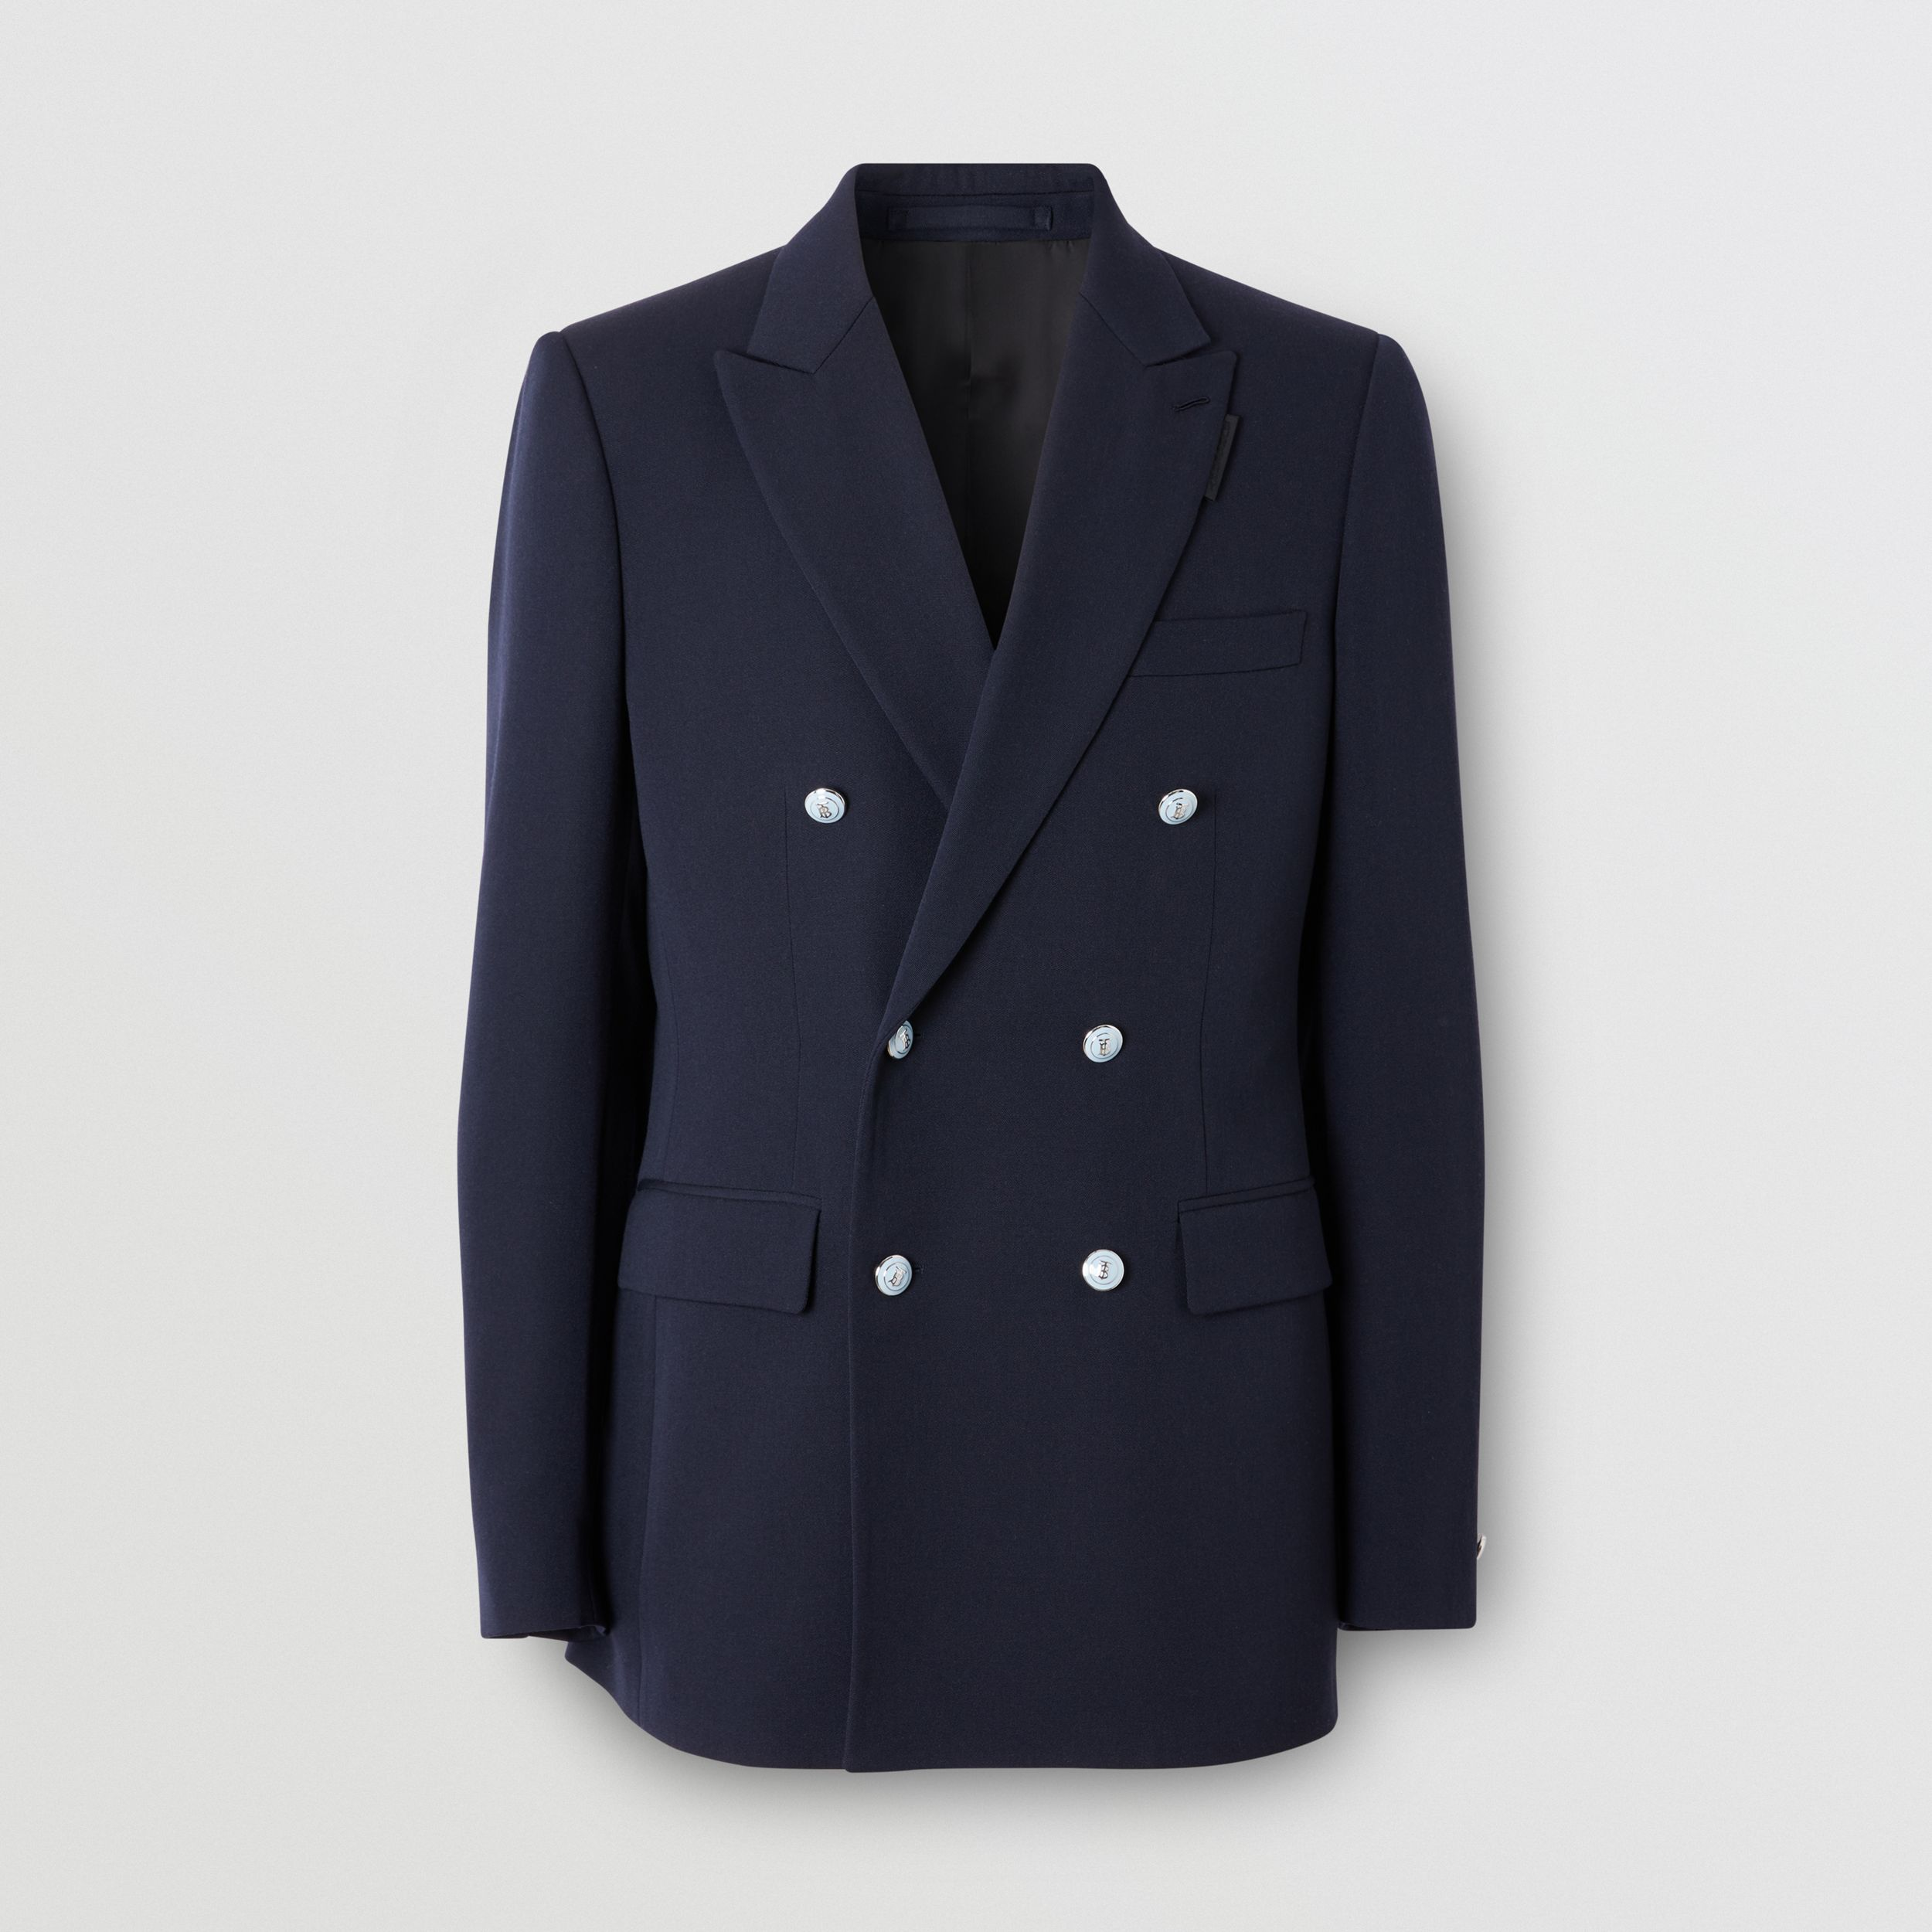 English Fit Wool Double-breasted Jacket - Men | Burberry - 4